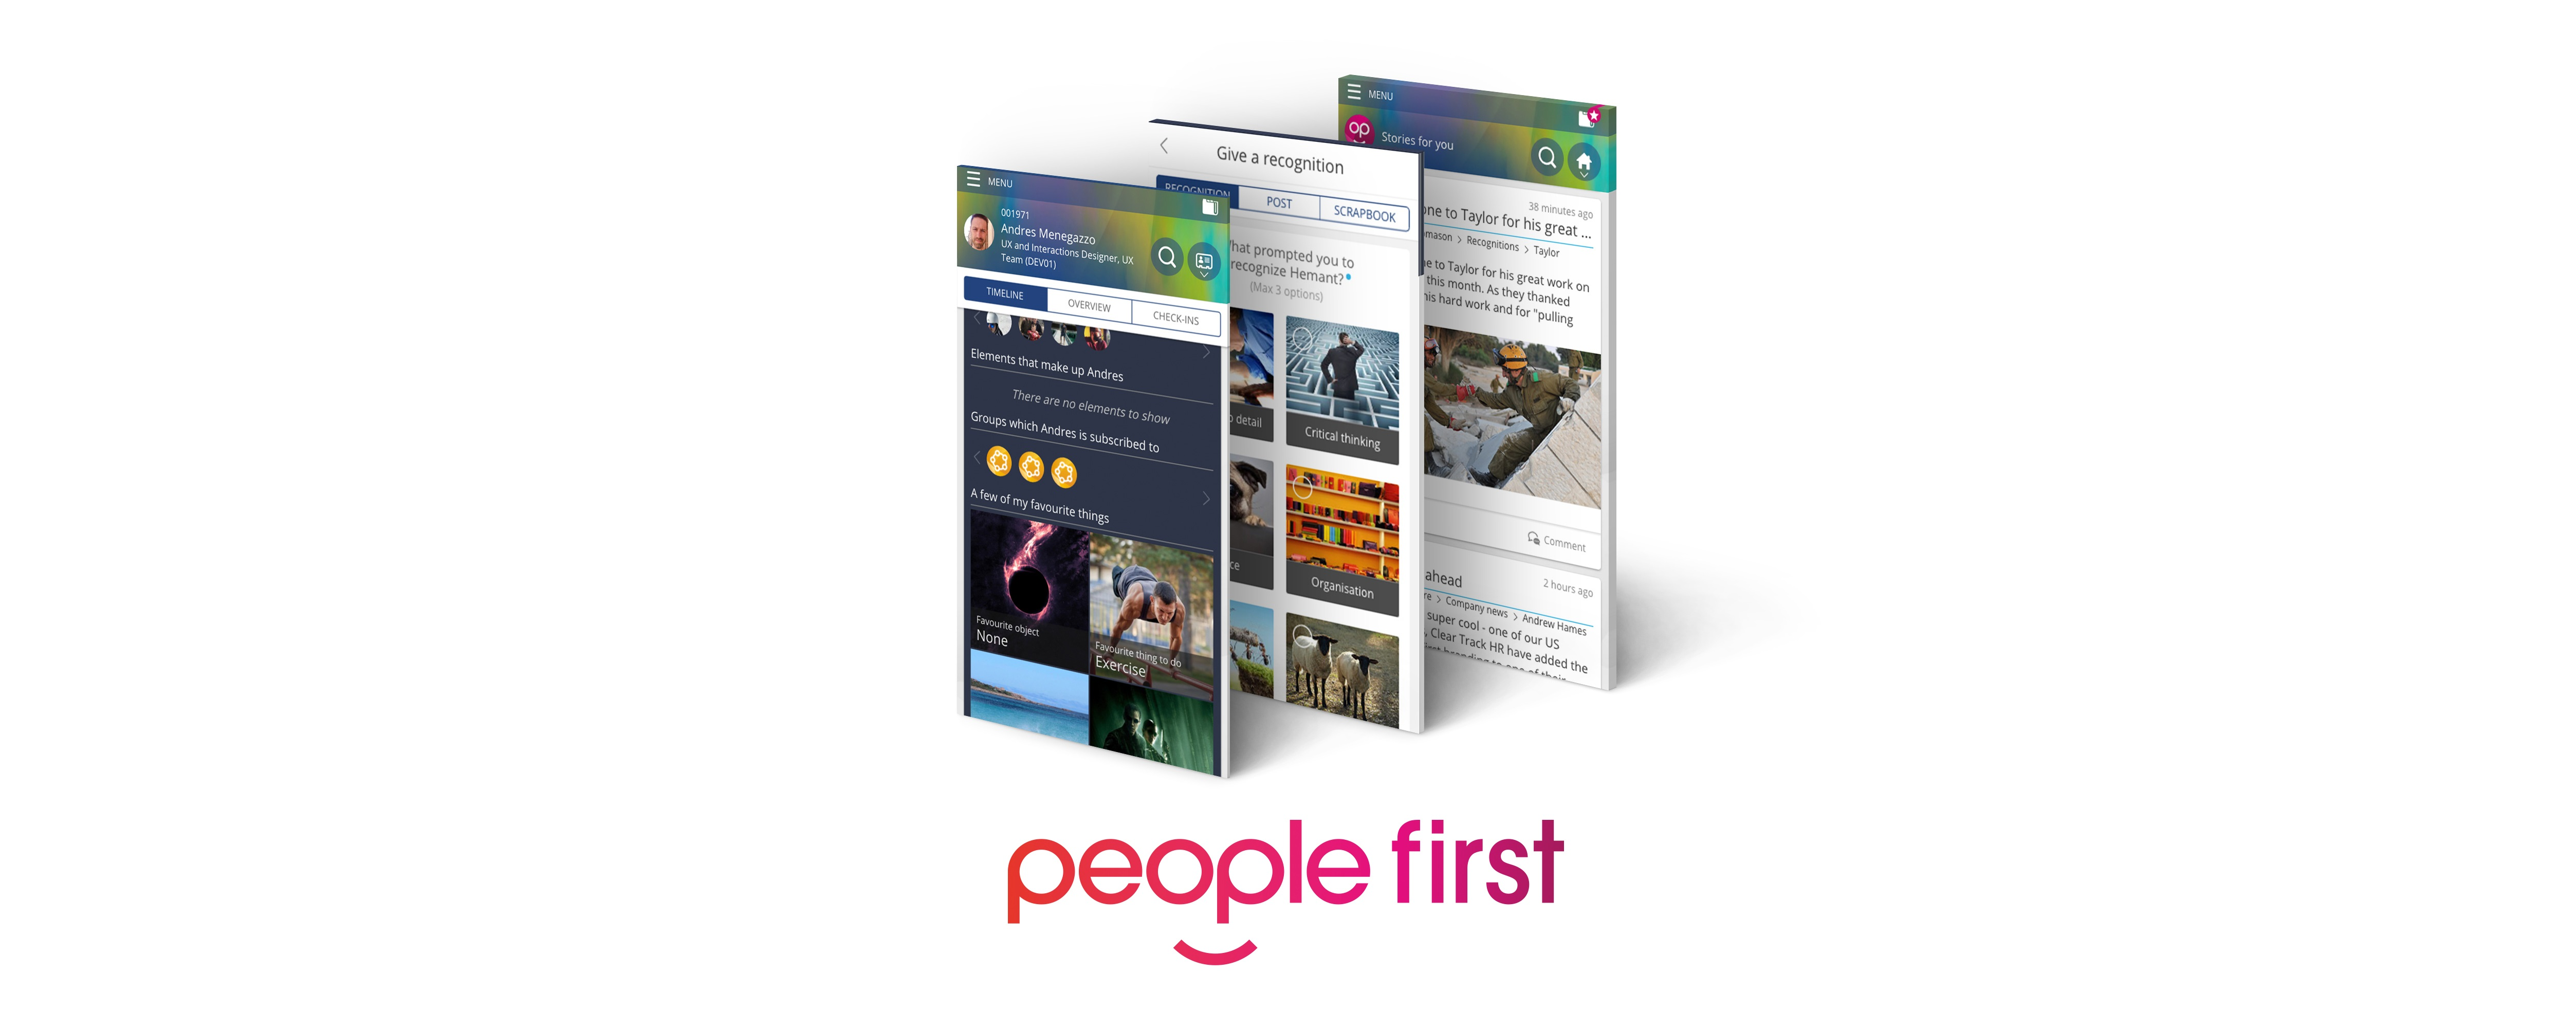 People First Screenshots and Logo